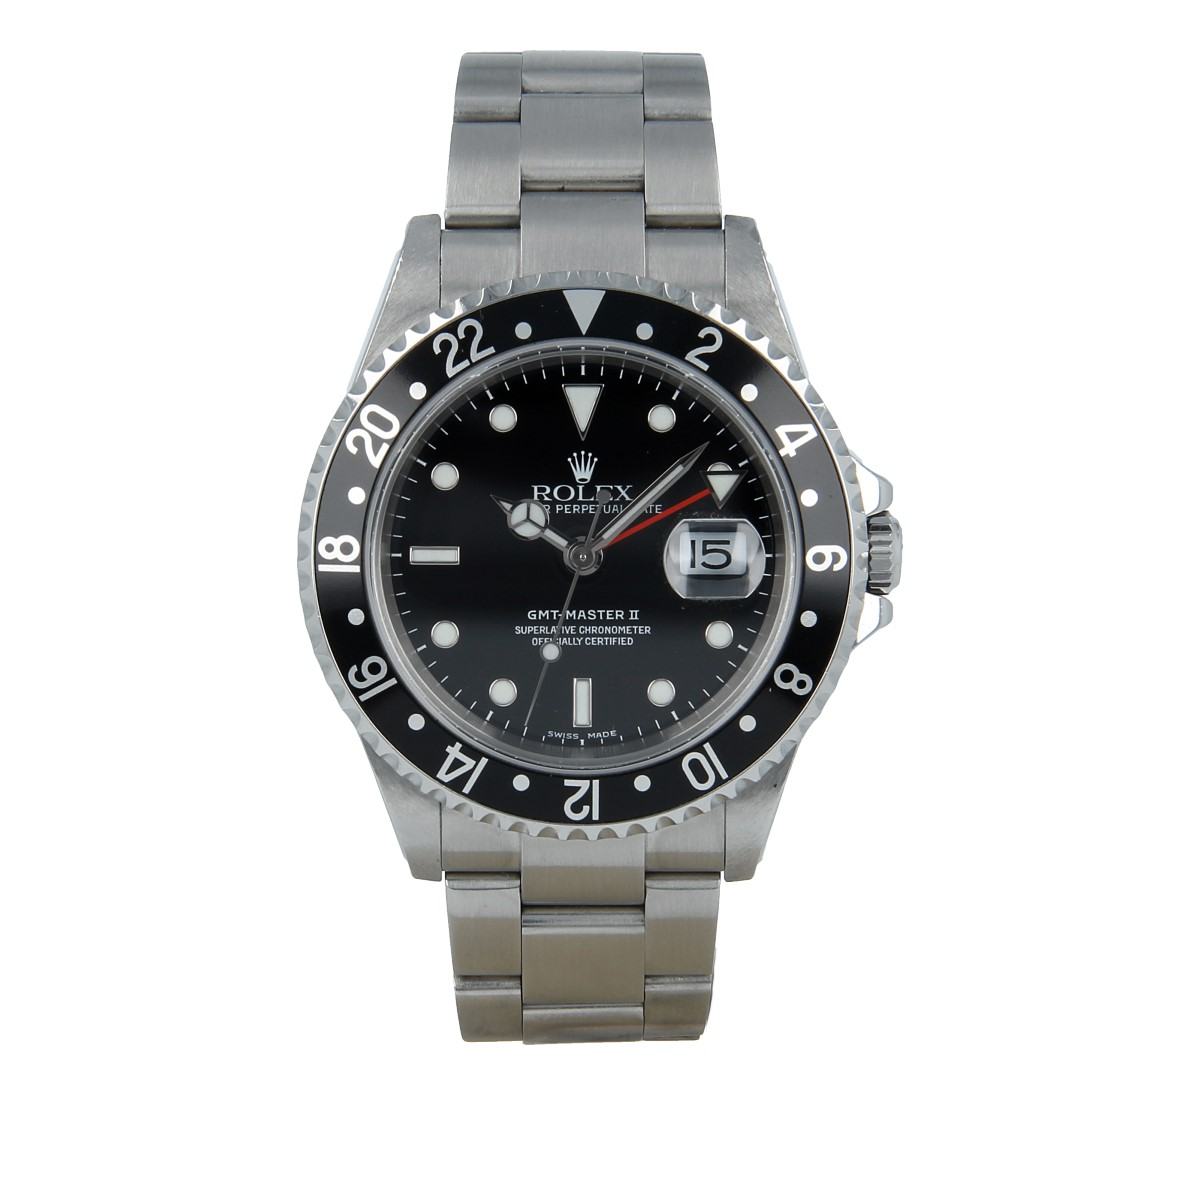 Rolex GMT Master II 16710 in mint condition | Buy second-hand Rolex watch